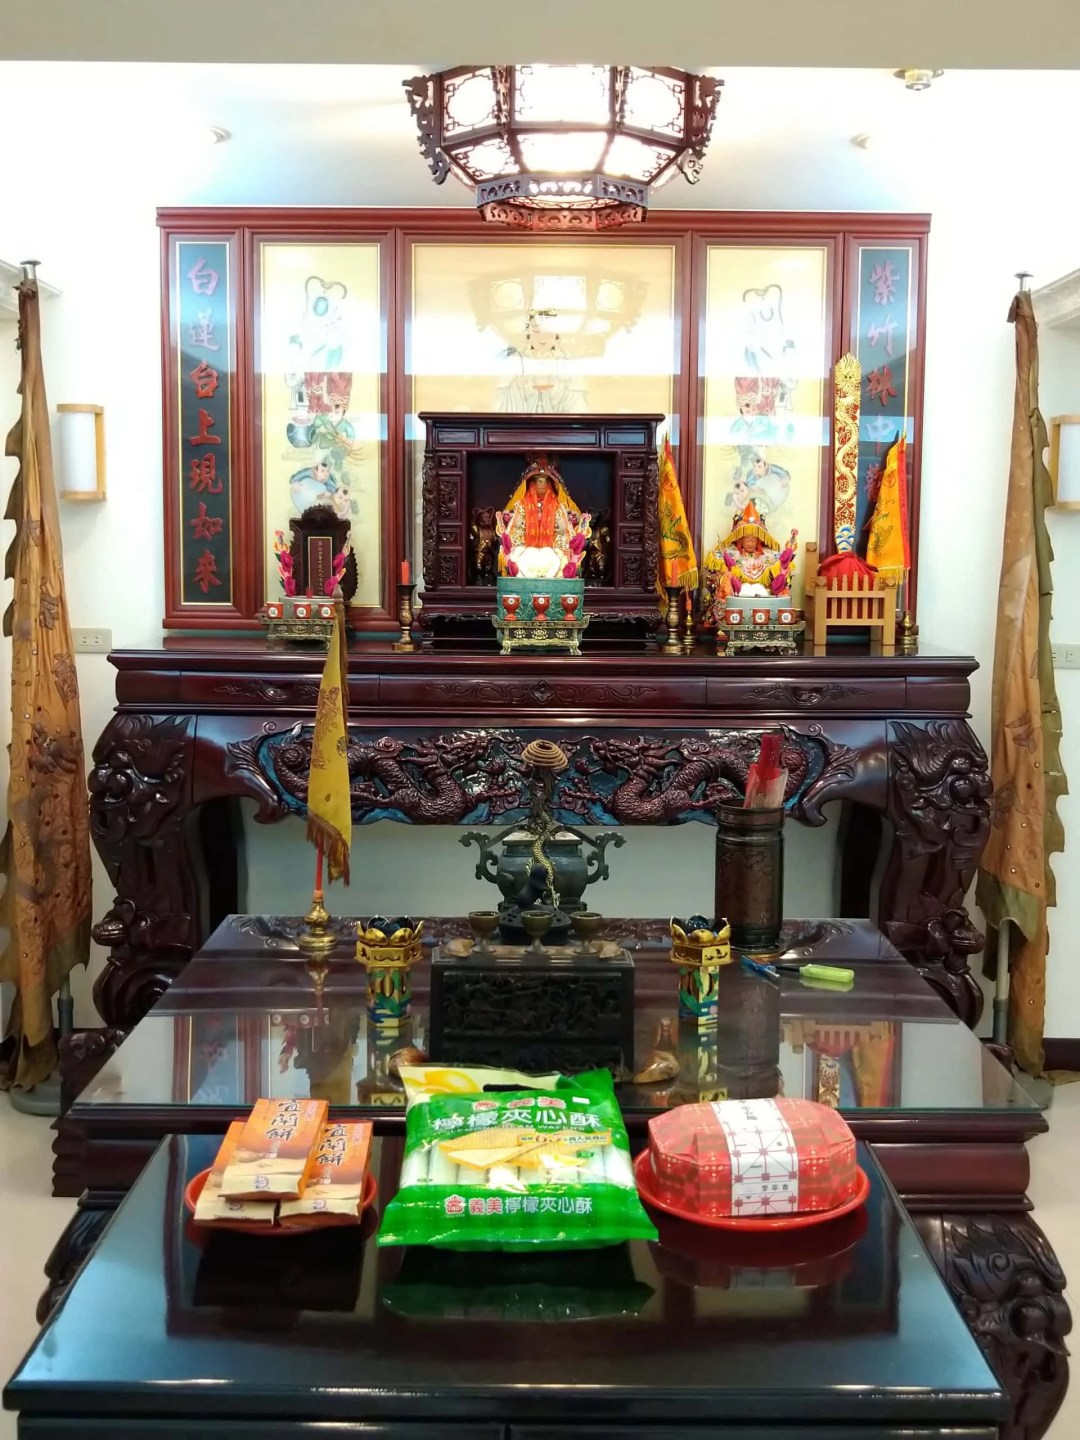 Tea Trade Mazu with food offerings